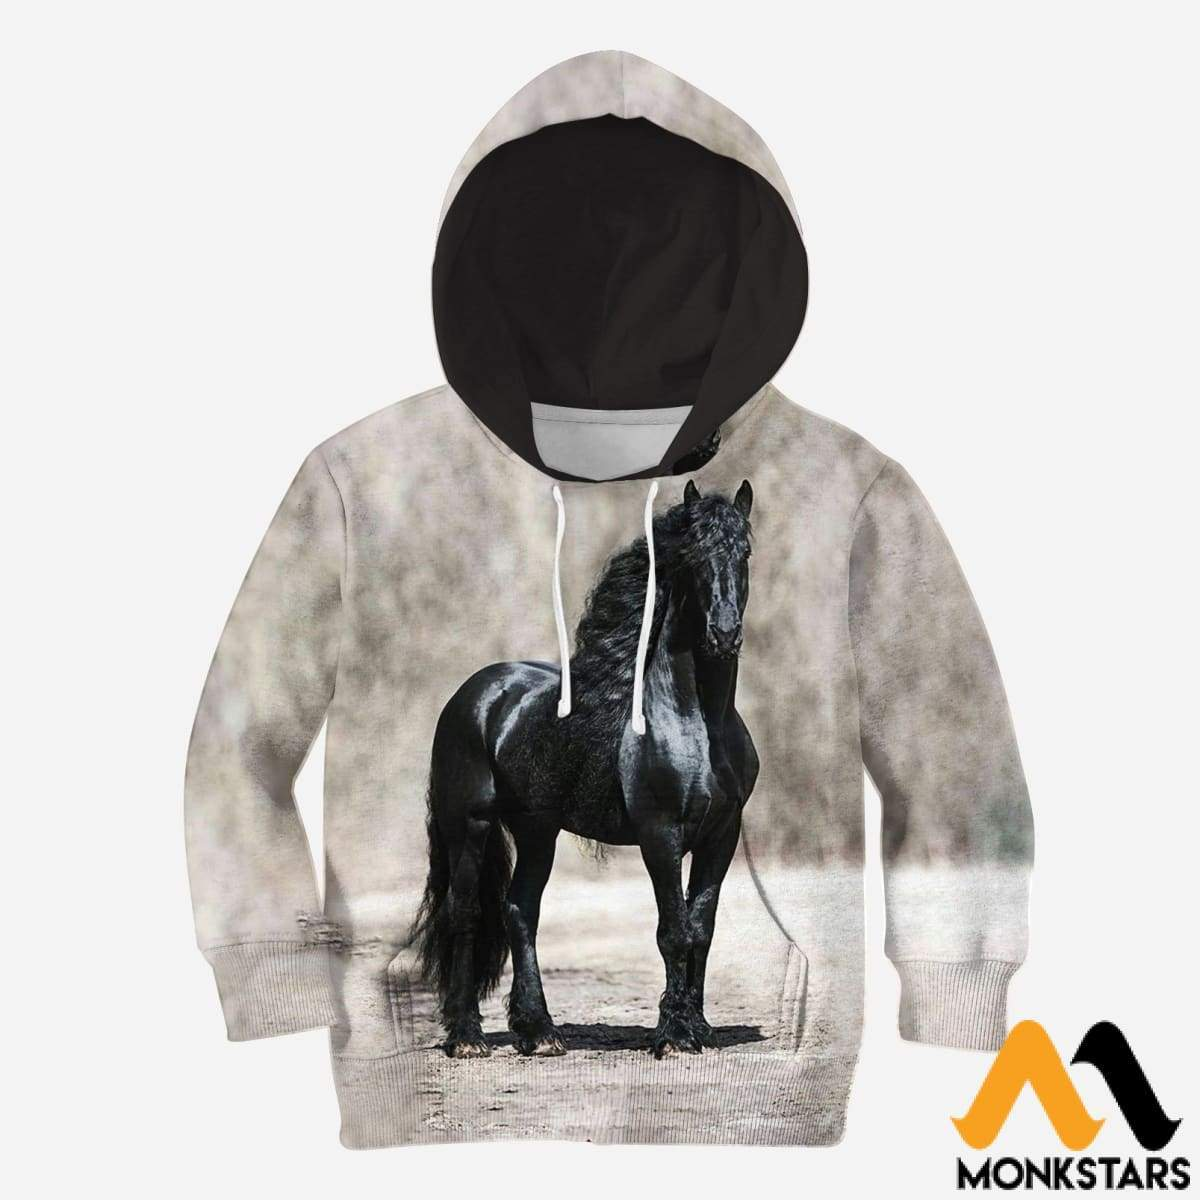 Kid 3D All Over Printed Black Horse Shirts And Shorts Normal Hoodie / Toddler 2T Clothes